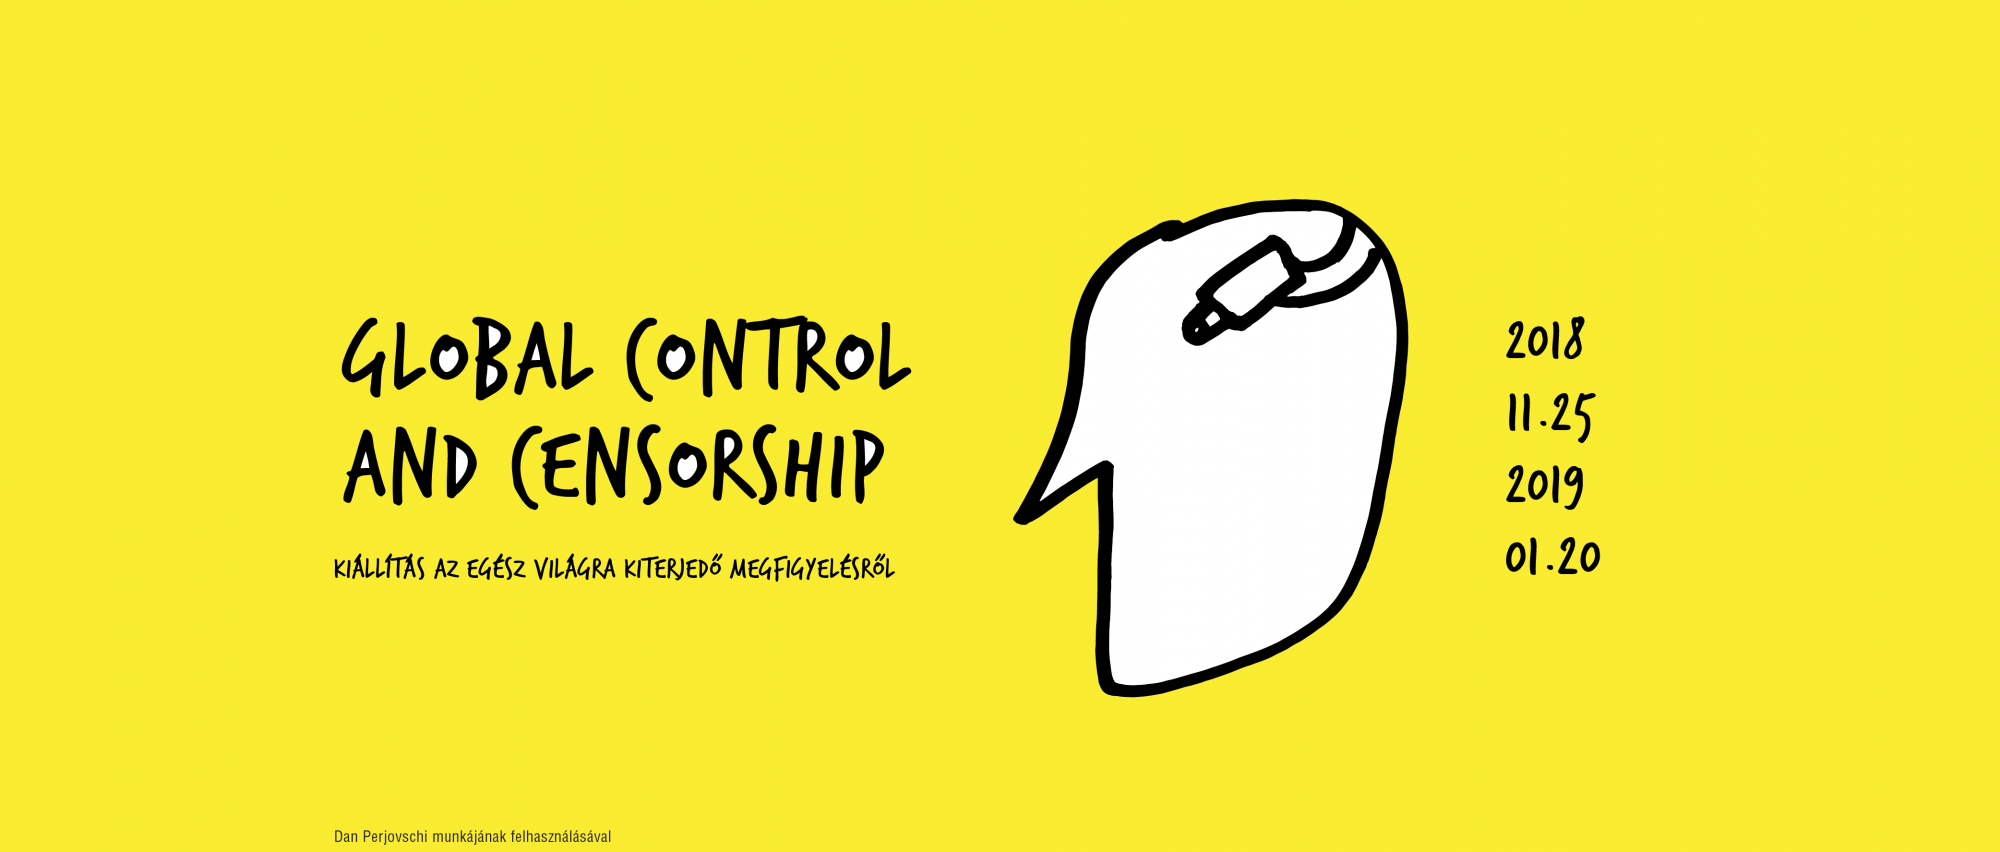 GLOBAL CONTROL AND CENSORSHIP